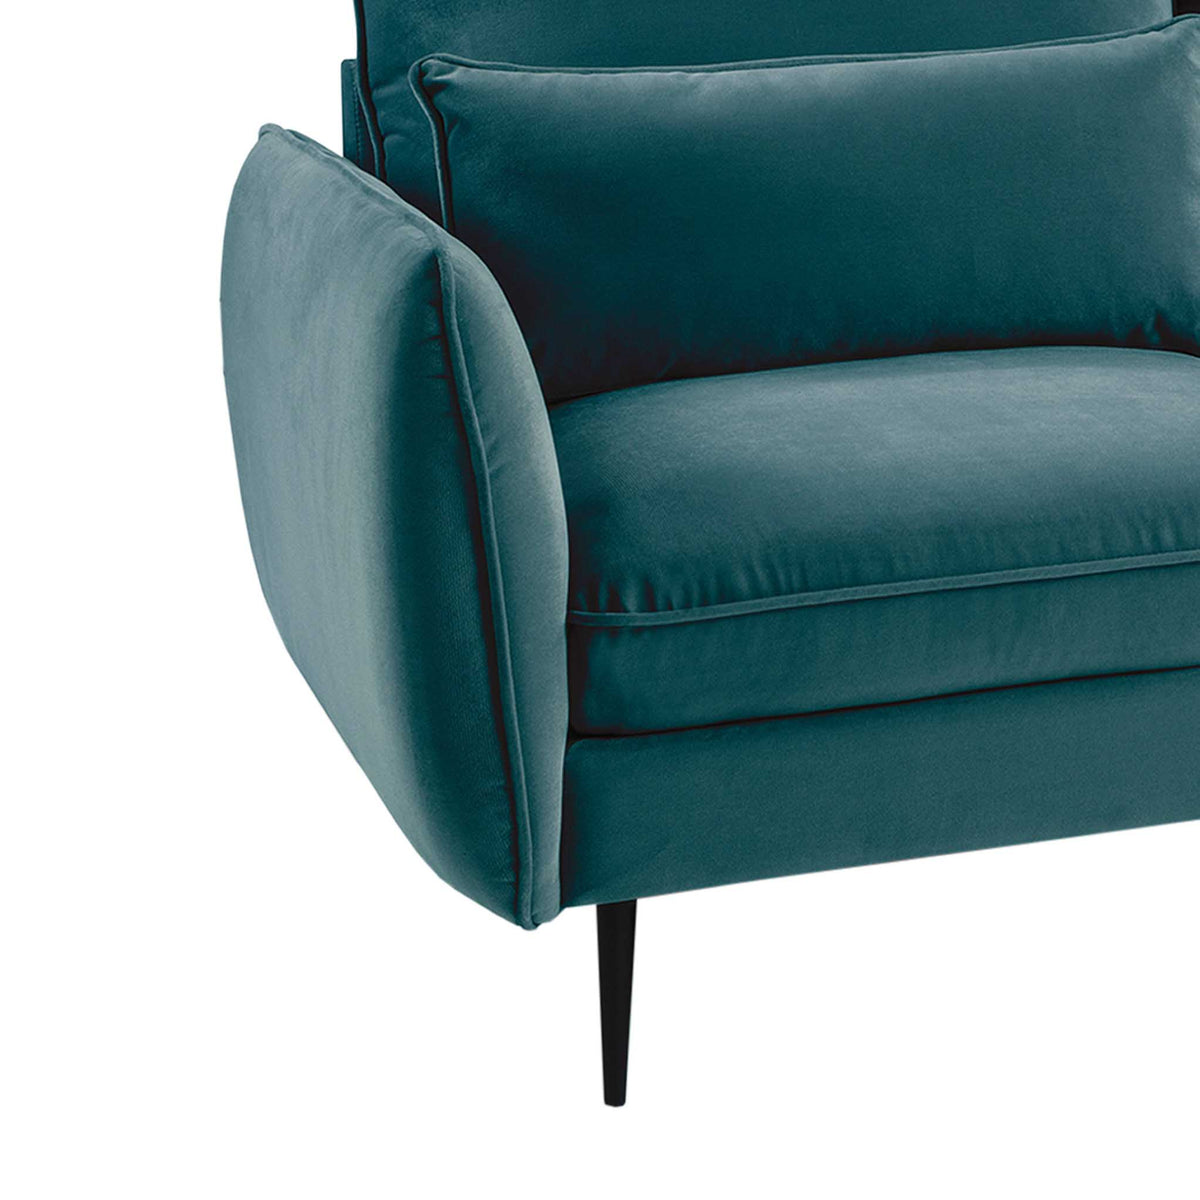 close up of the cushioned armrest on the Rhonda Peacock Velvet 3 Seater Sofa